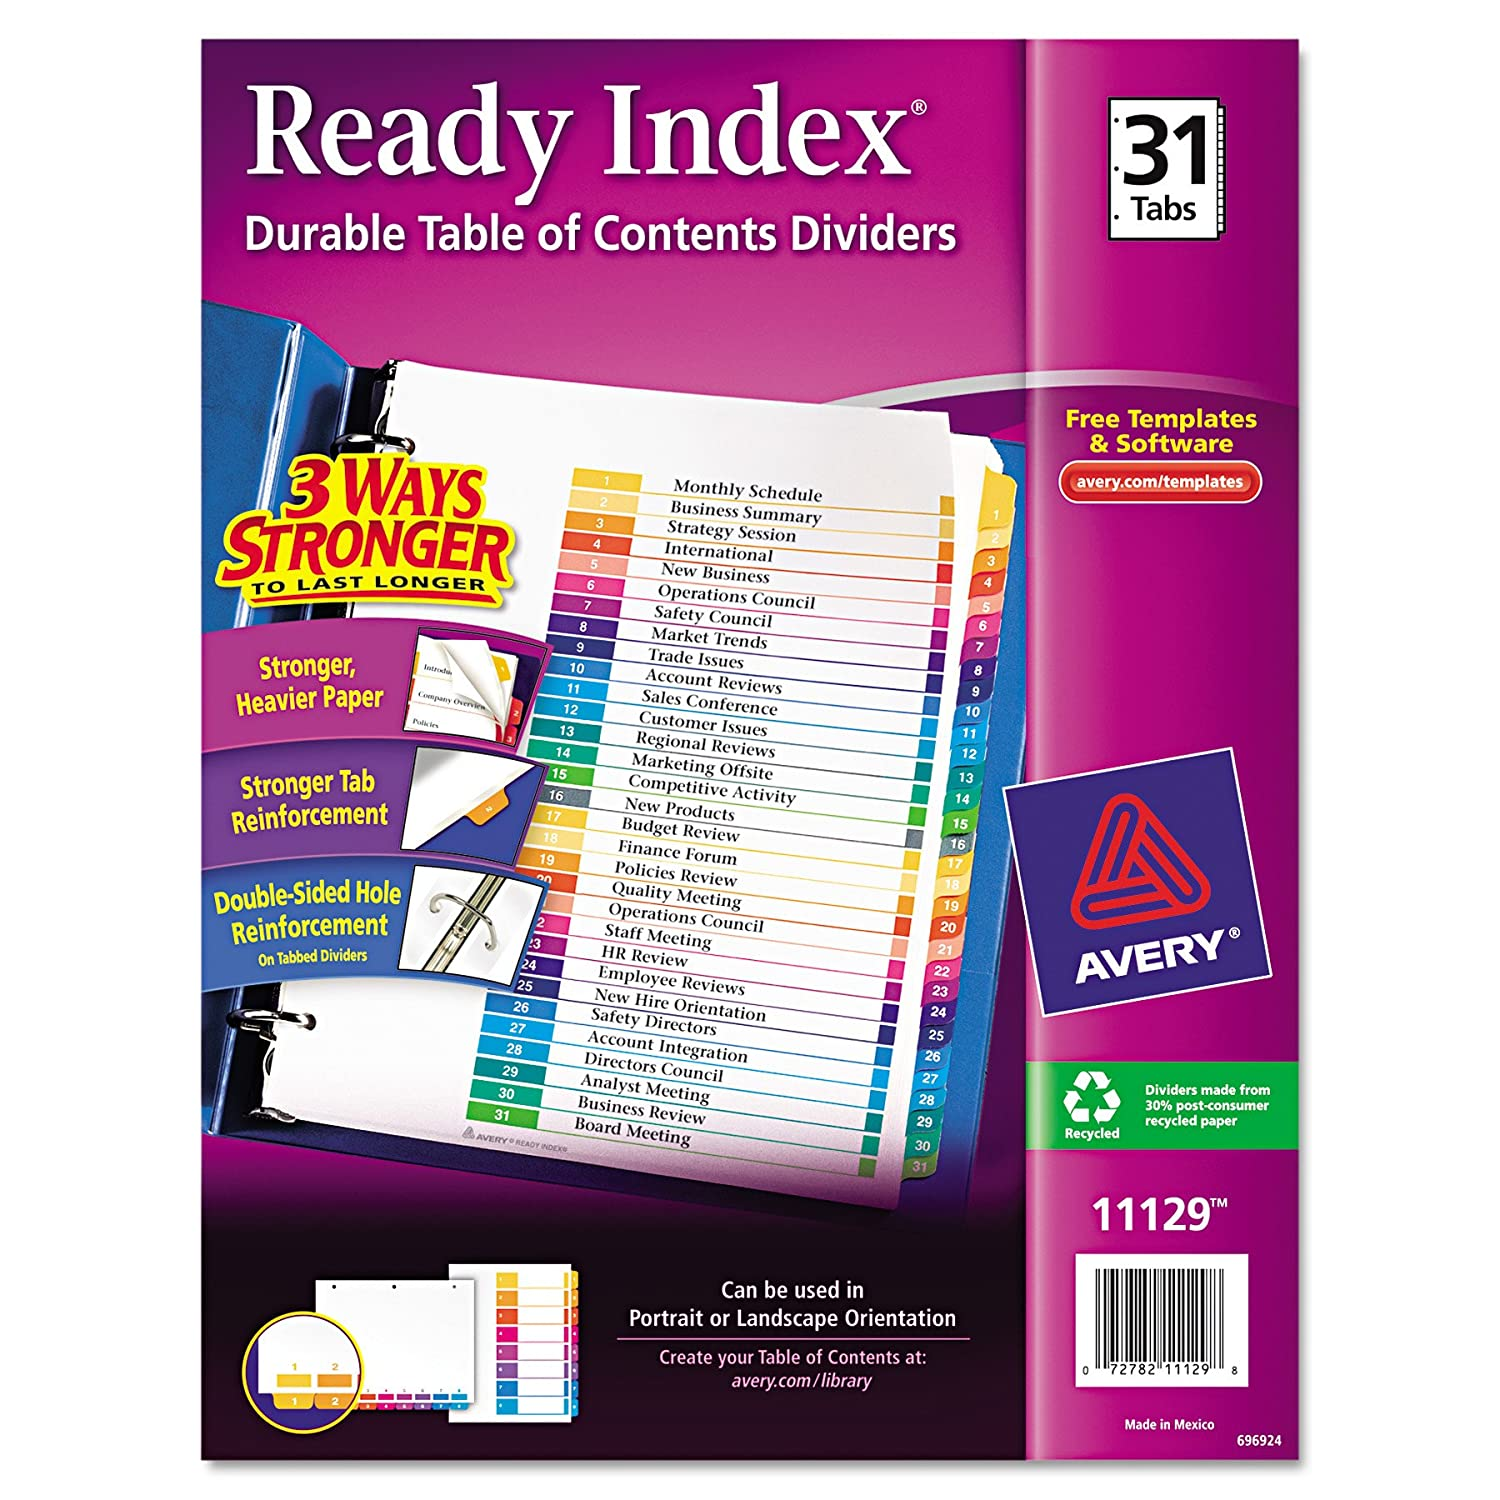 Amazon Avery Ready Index Table of Contents Dividers 31 Tab